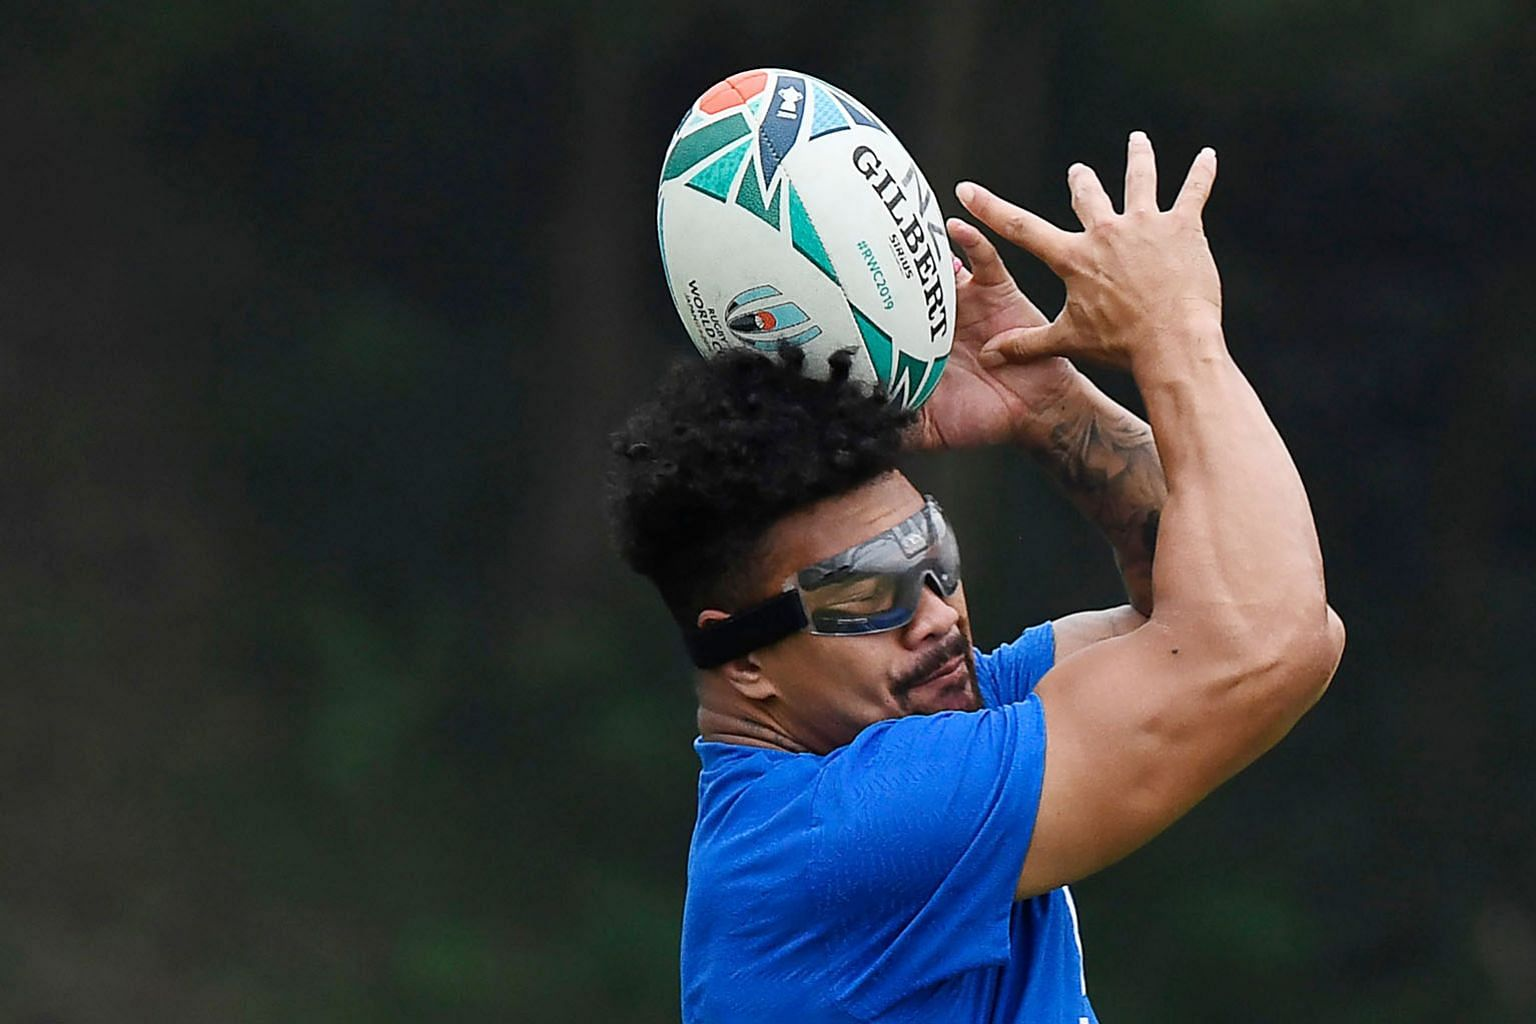 New Zealand flanker Ardie Savea training during a captain's run on the eve of their Pool B match against Canada yesterday. He will sport goggles to protect his sight. PHOTO: AGENCE FRANCE-PRESSE